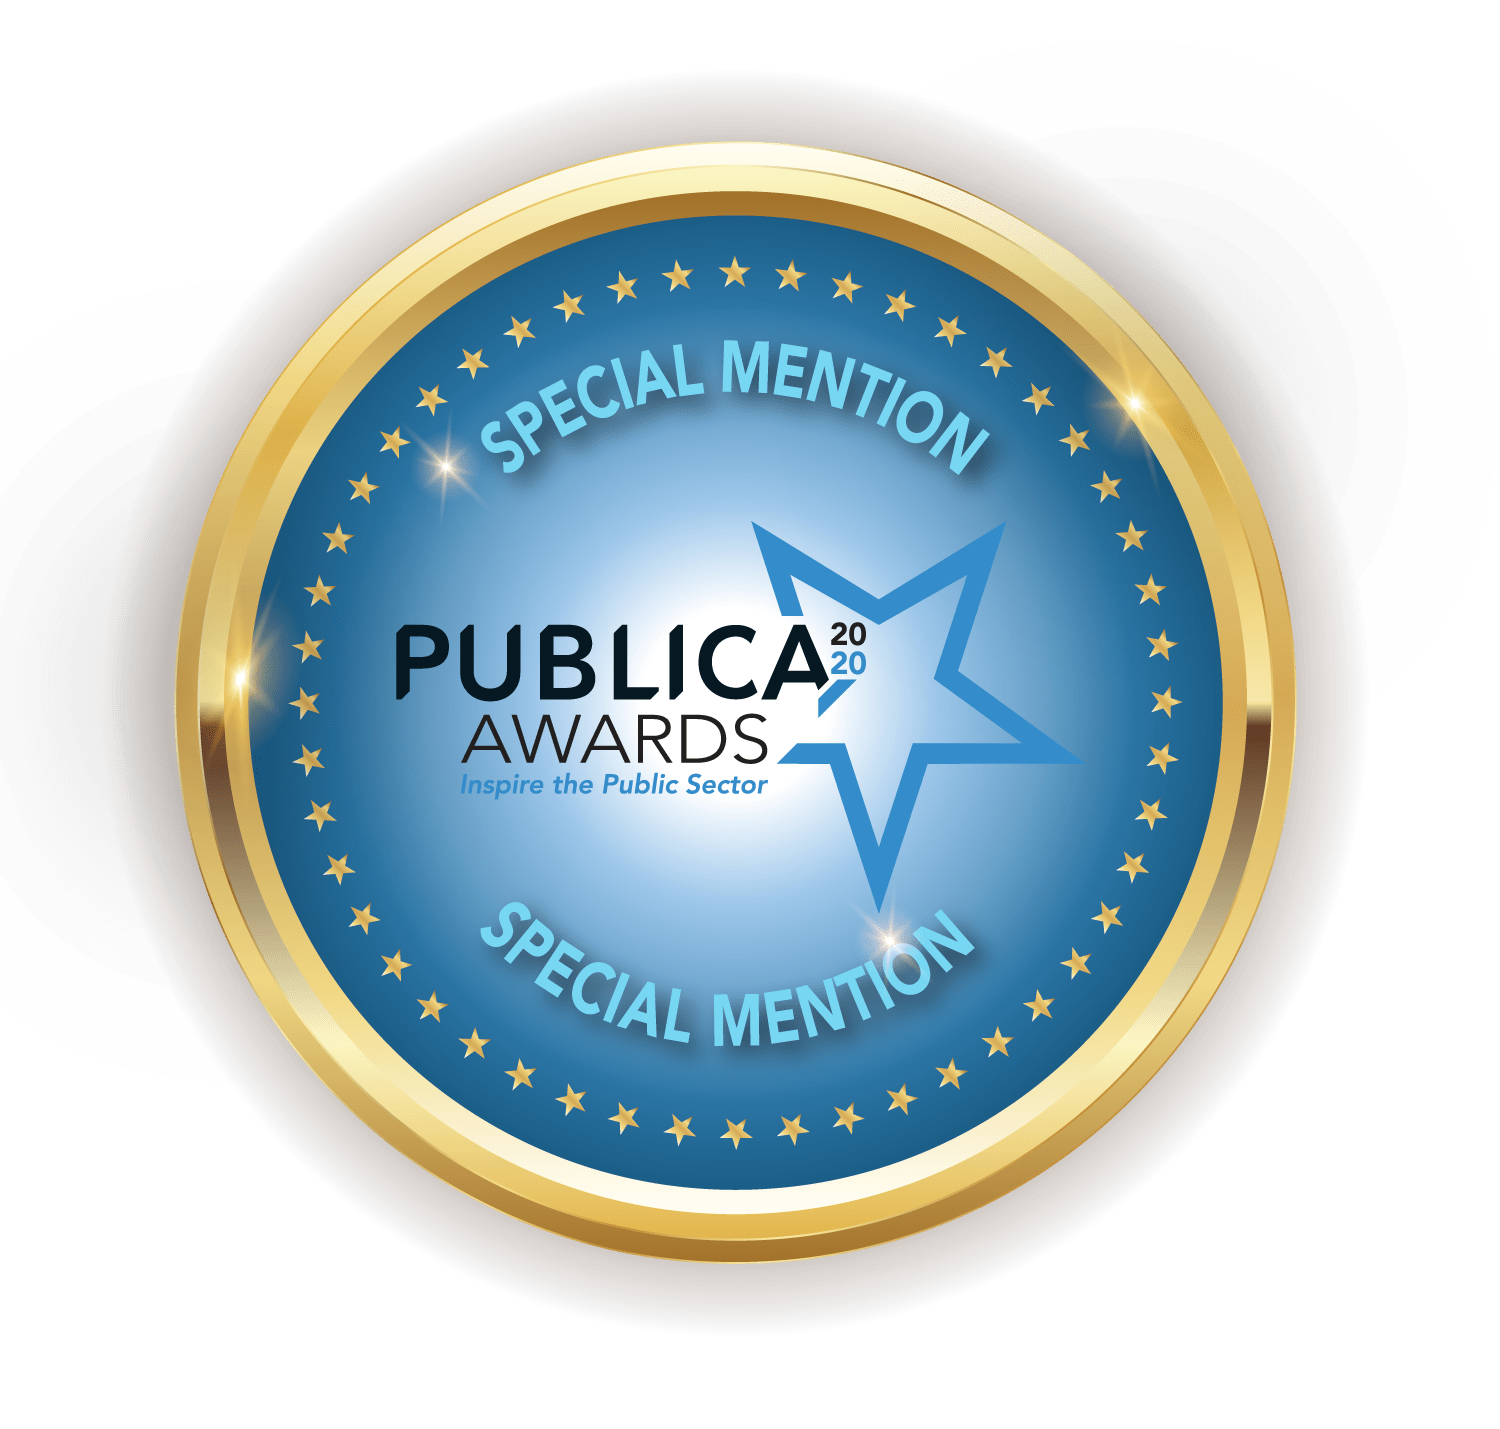 PUBLICAAwards_medaille_mention_Gagnant_fond-bleuNL